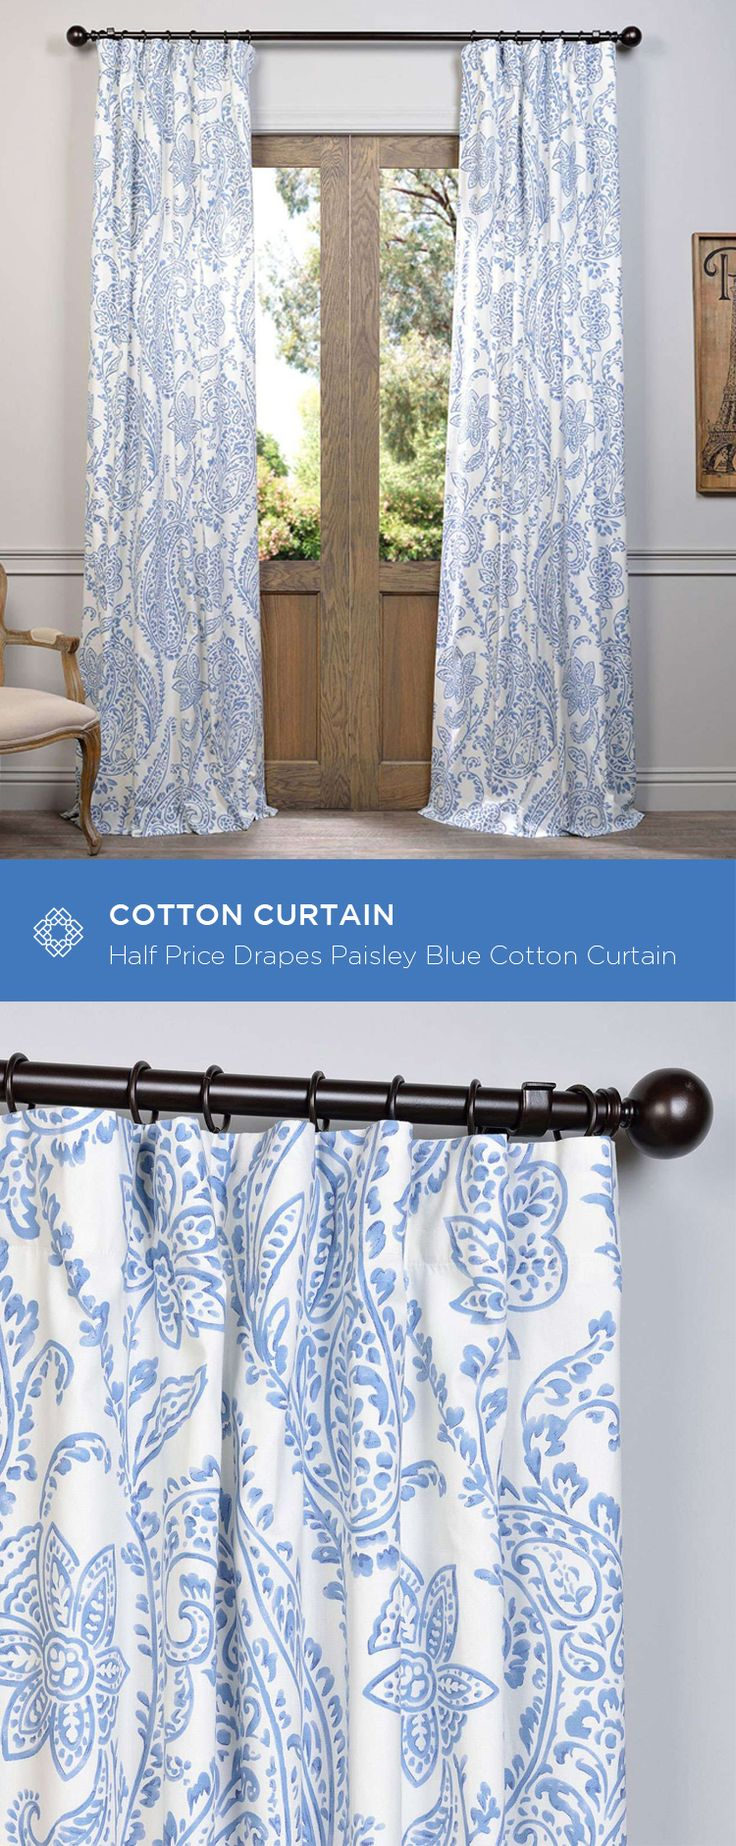 Best 25 Paisley Curtains Ideas That You Will Like On Pinterest Teal Bedroom Curtains